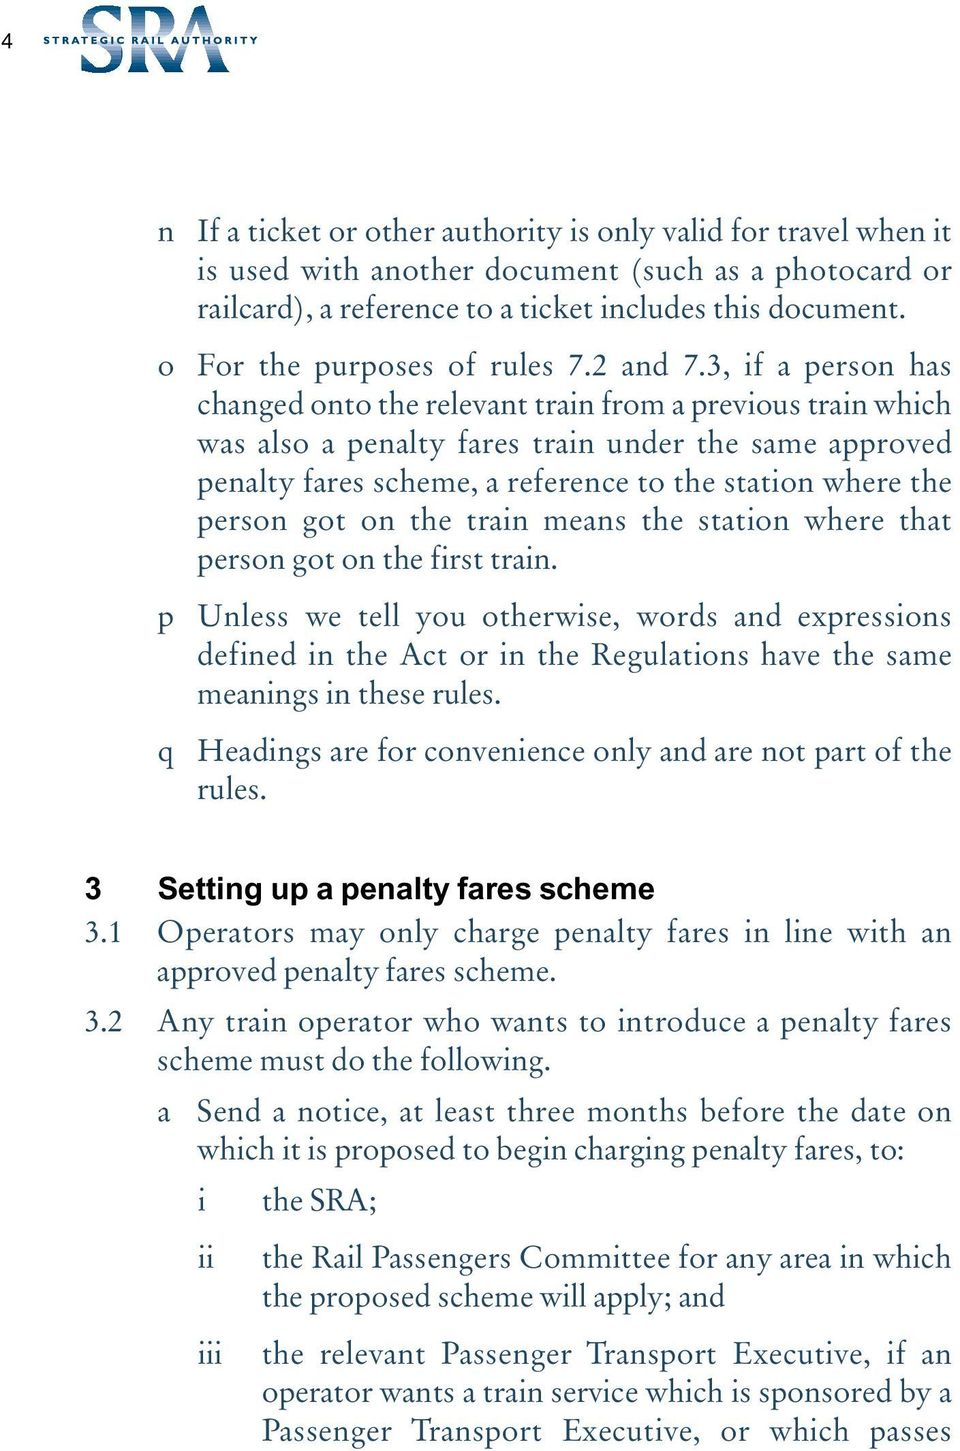 3, if a person has changed onto the relevant train from a previous train which was also a penalty fares train under the same approved penalty fares scheme, a reference to the station where the person